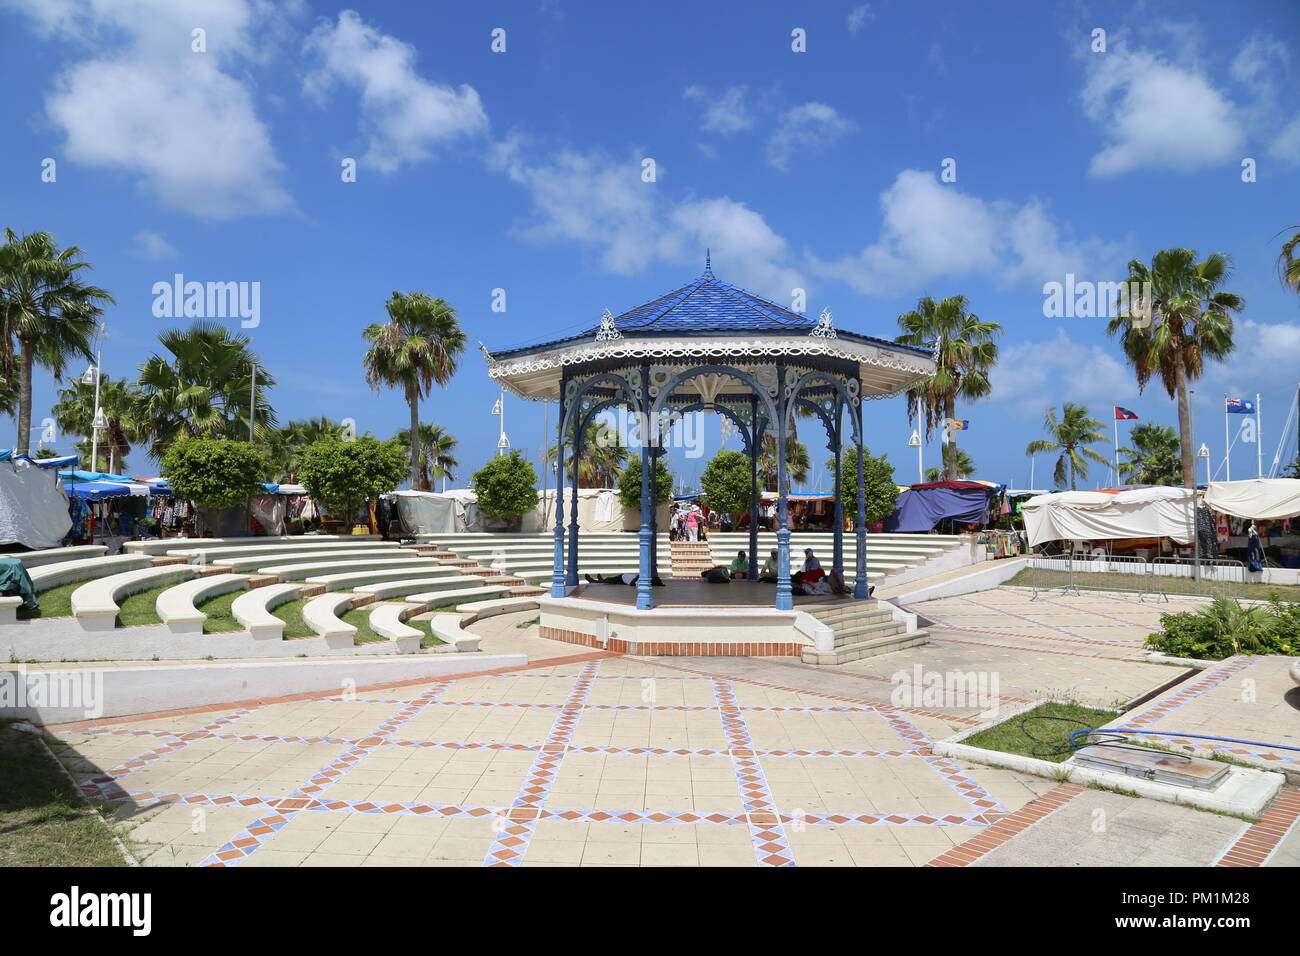 Philipsburg, San Maarten-20 April, 2016: Streets Markets selling traditional Caribbean clothing - Stock Image